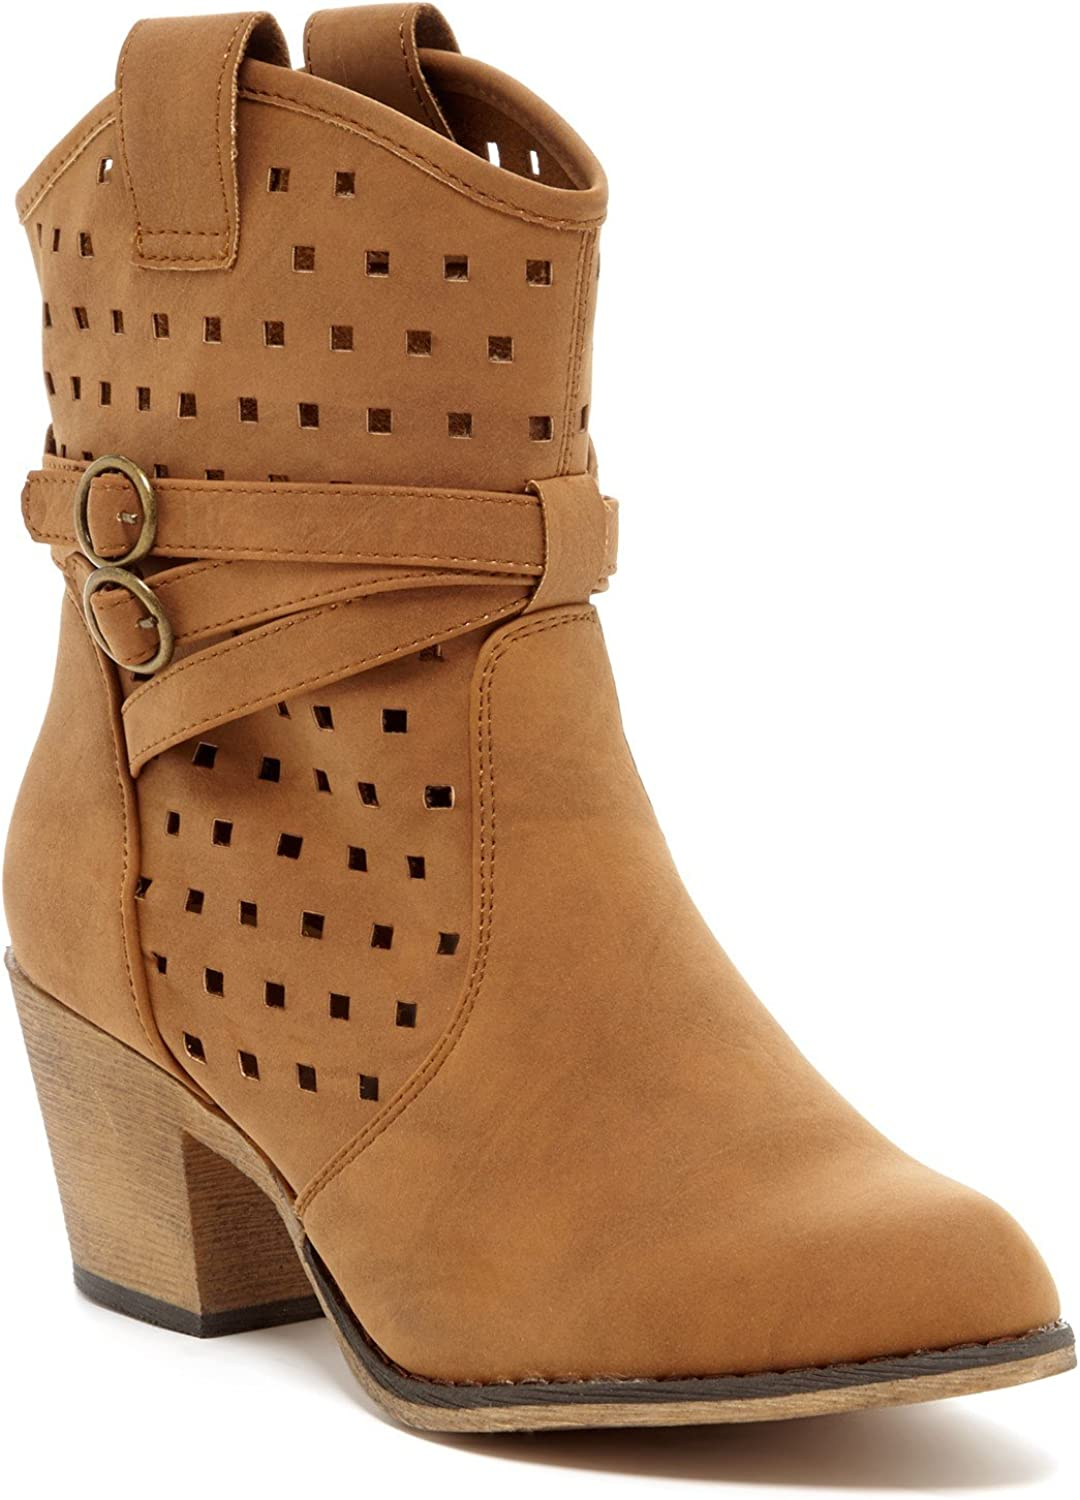 Charles Albert Women's Laser-Cut Perforated Western Cowboy Boot with Pull-Up Tabs